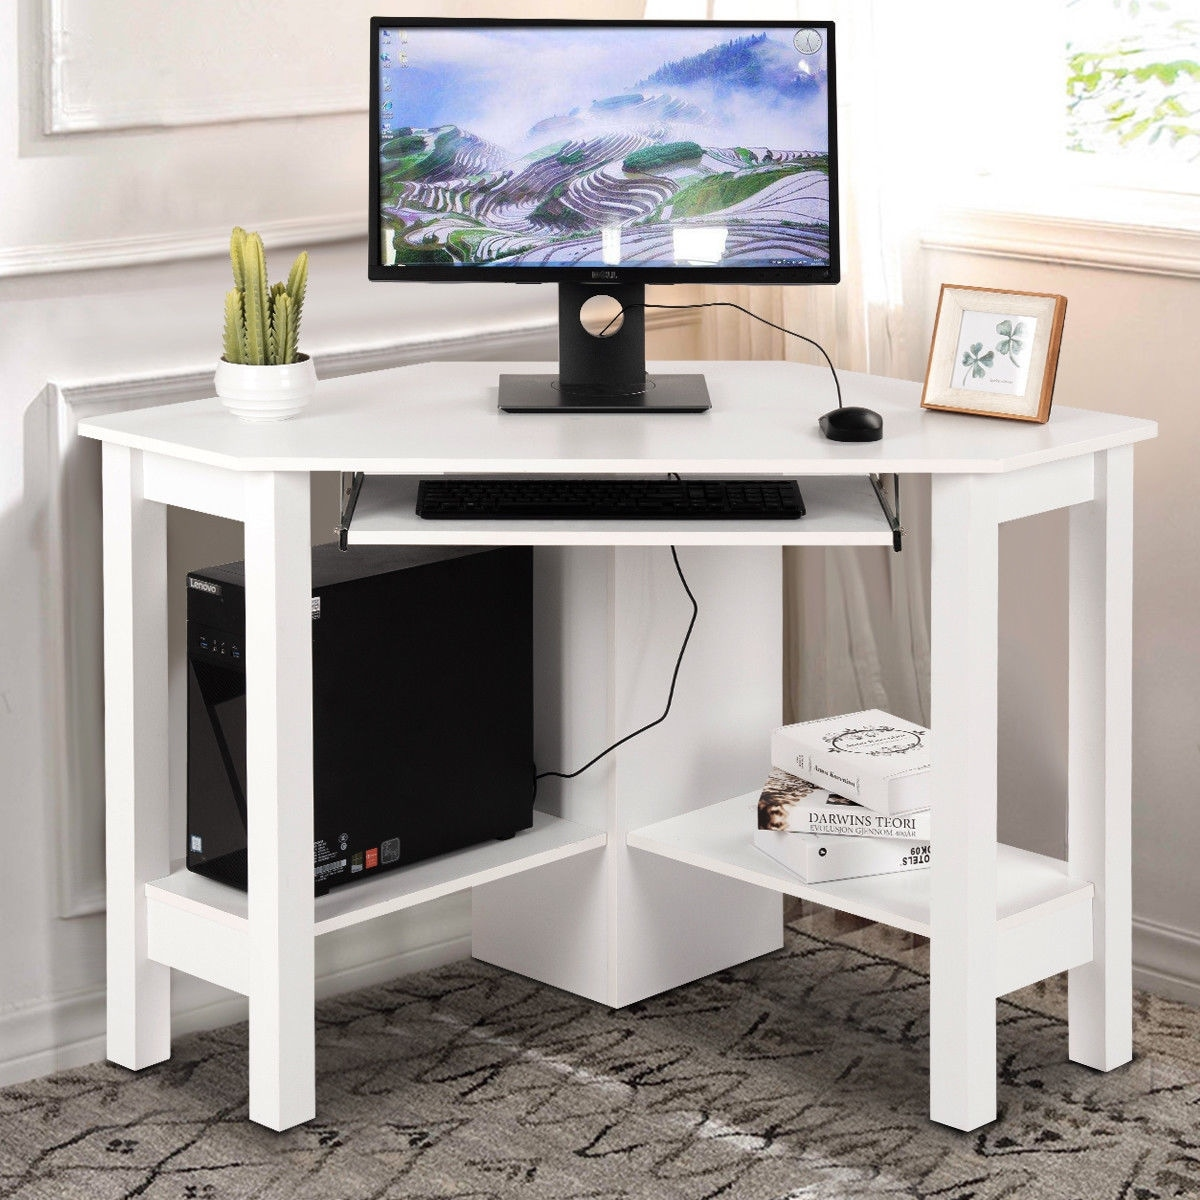 Costway Wooden Corner Desk With Drawer Computer Pc Table Study Office Room White On Free Shipping Today 22893653